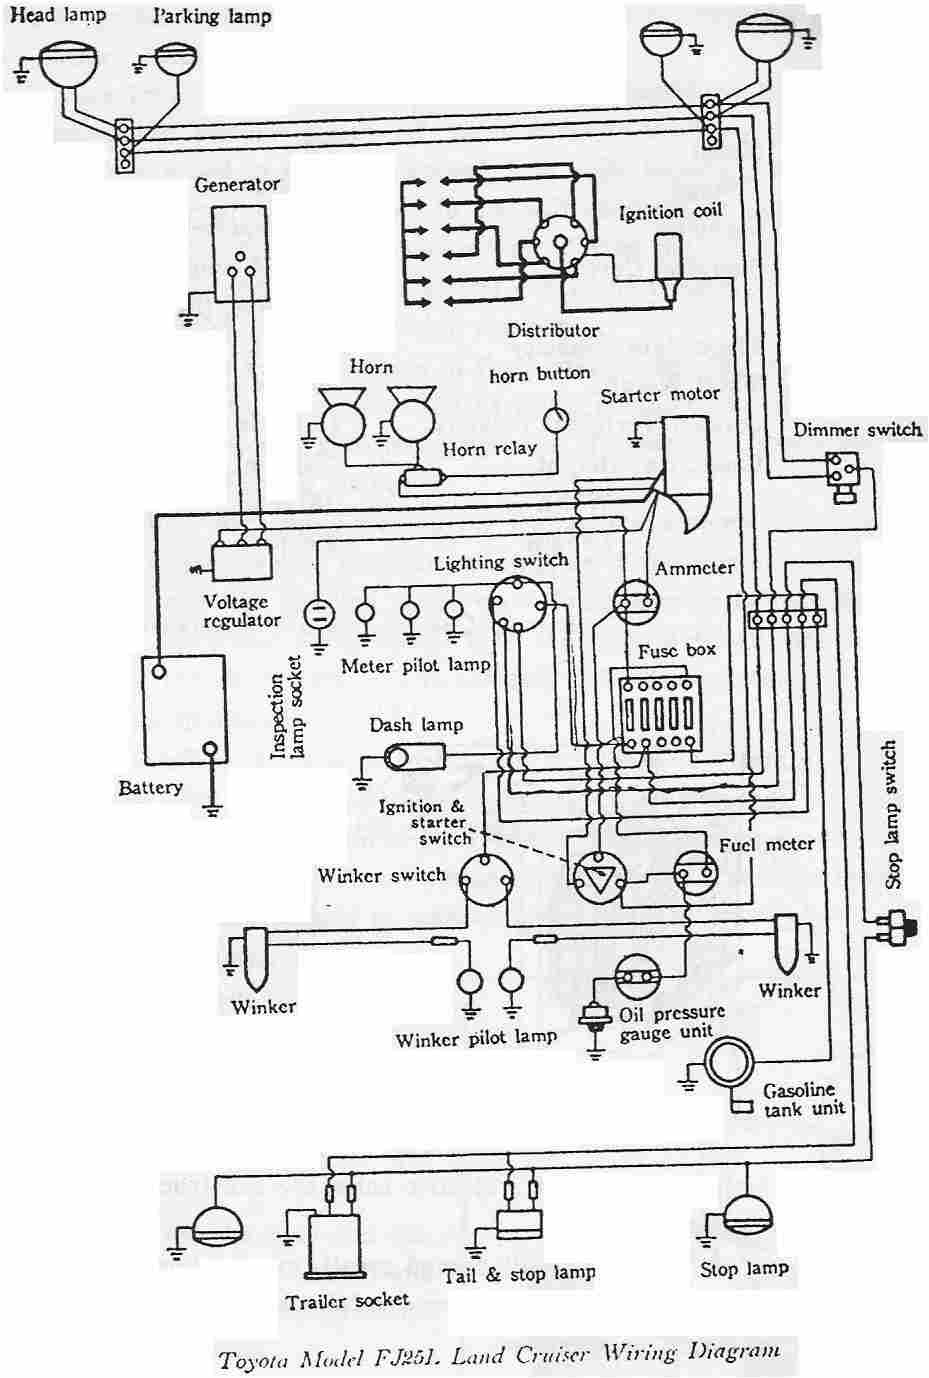 1995 toyota land cruiser wiring diagram  1995  free engine image for user manual download